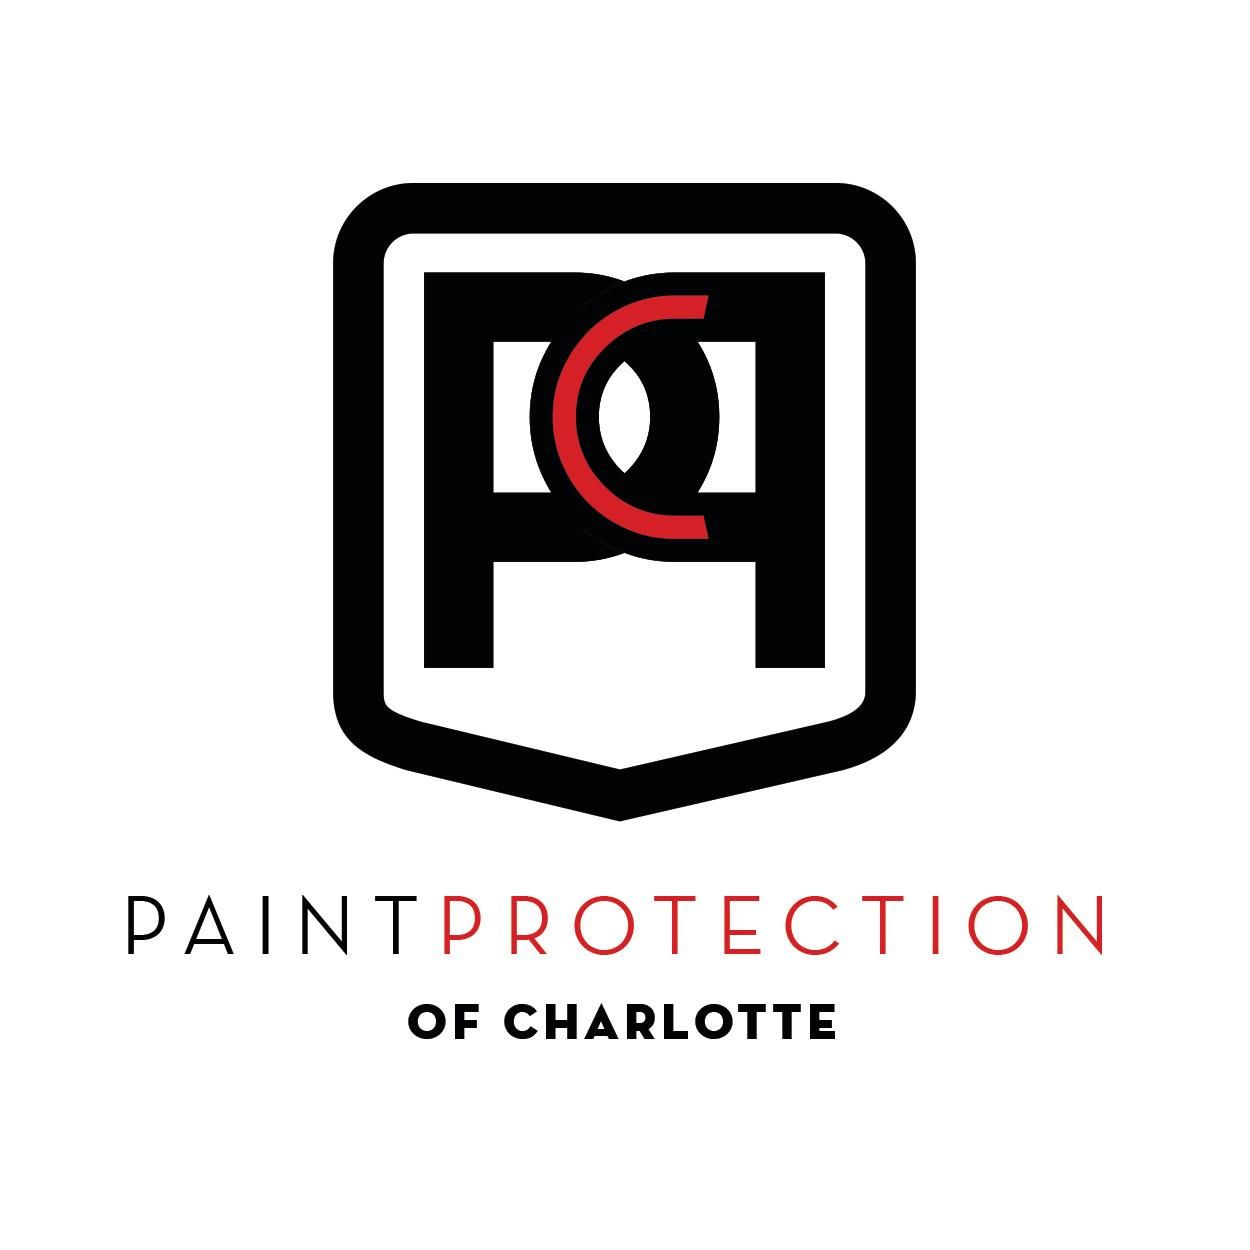 Paint Protection of Charlotte image 3